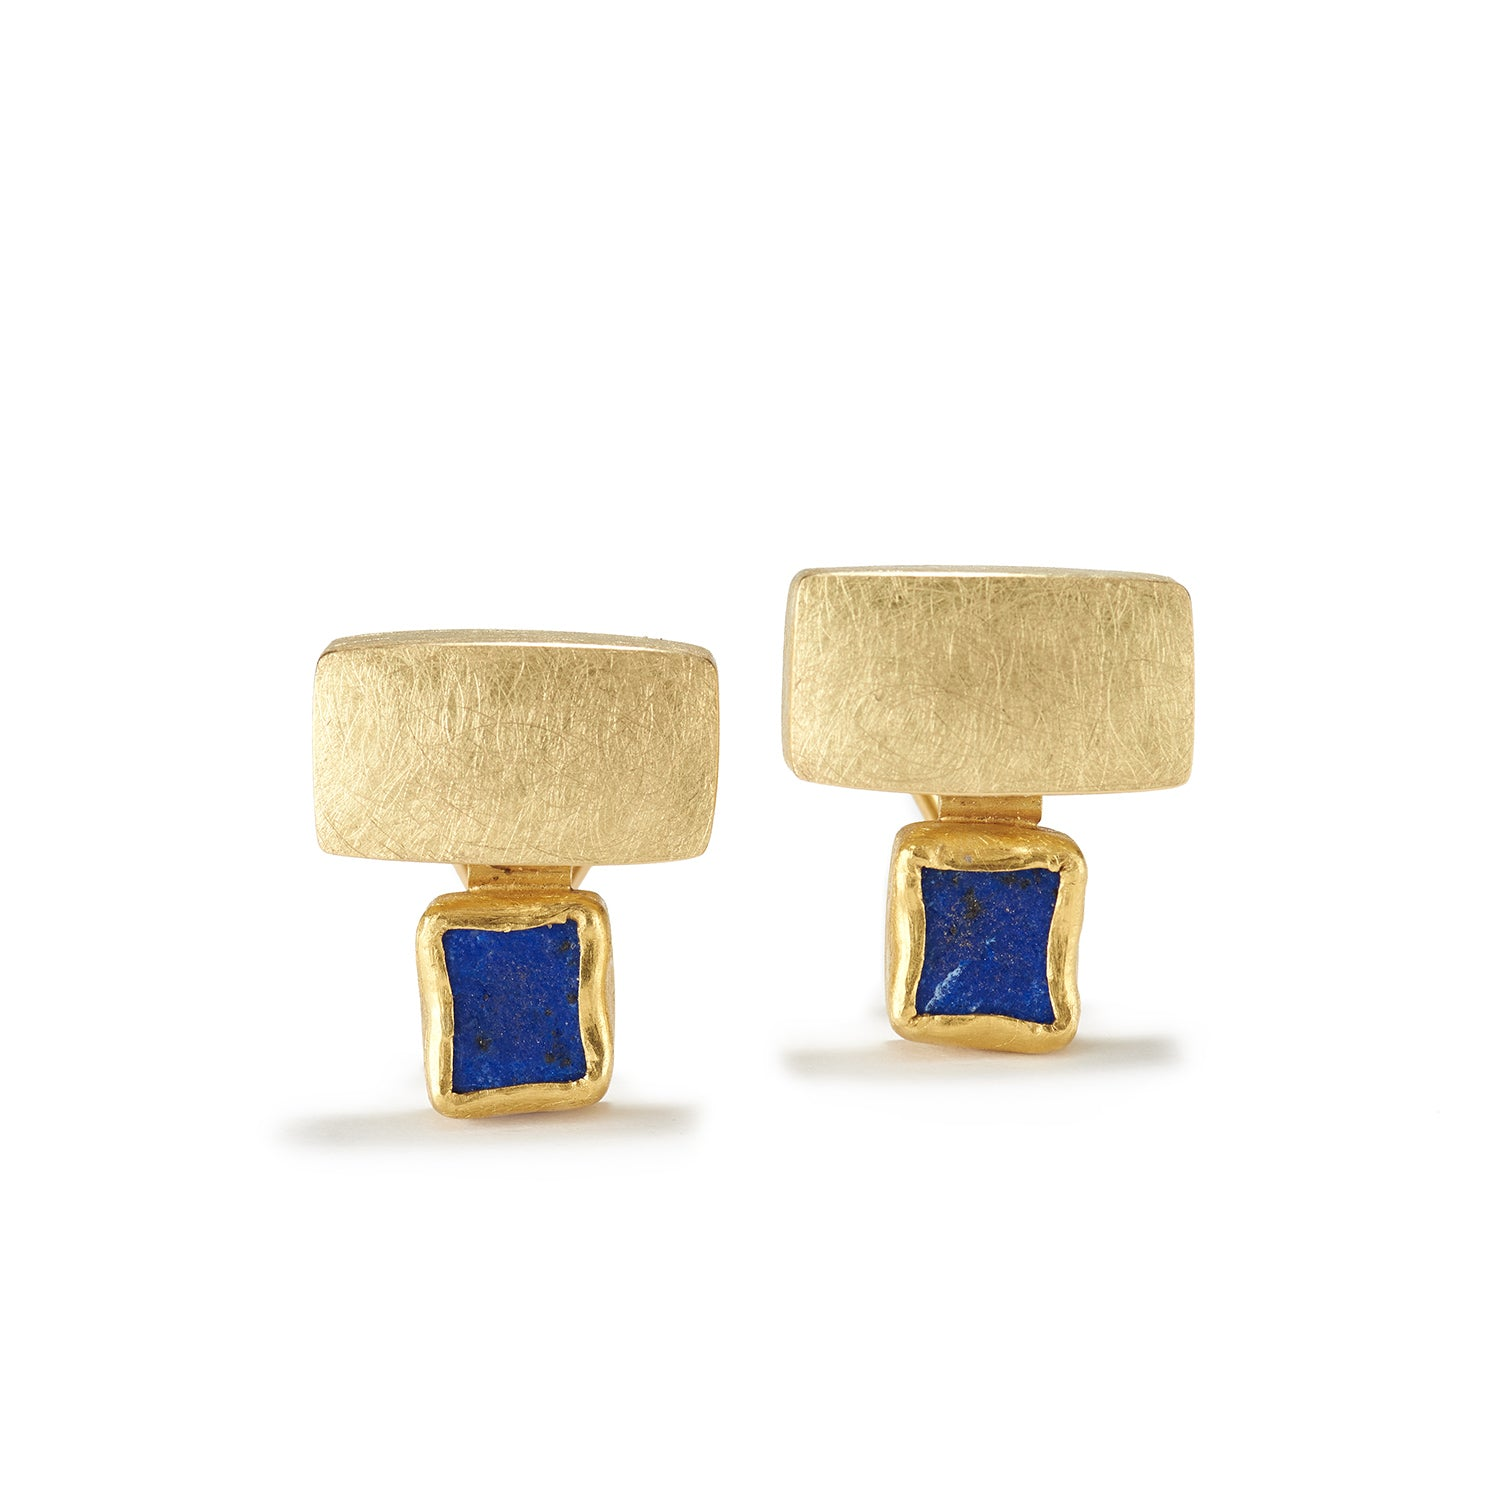 Gold and Rough Lapis Earrings